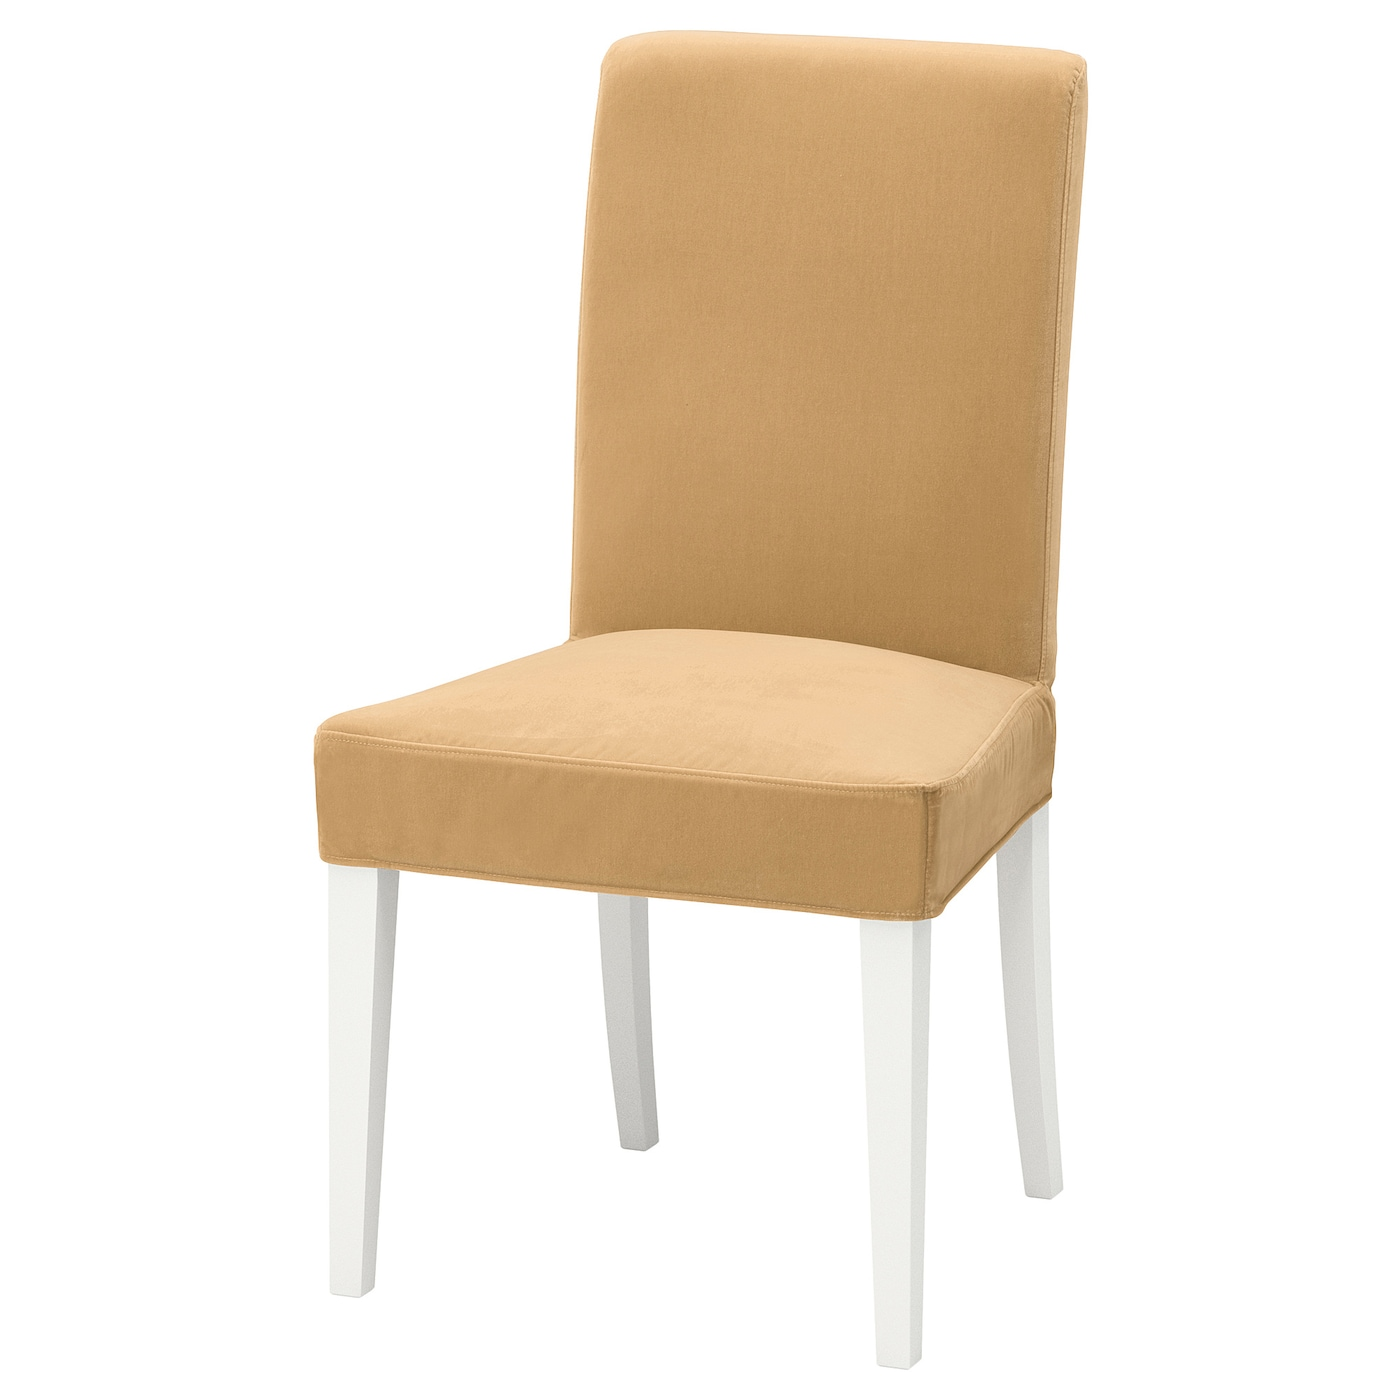 IKEA HENRIKSDAL chair The chair legs are made of solid wood, which is a durable natural material.